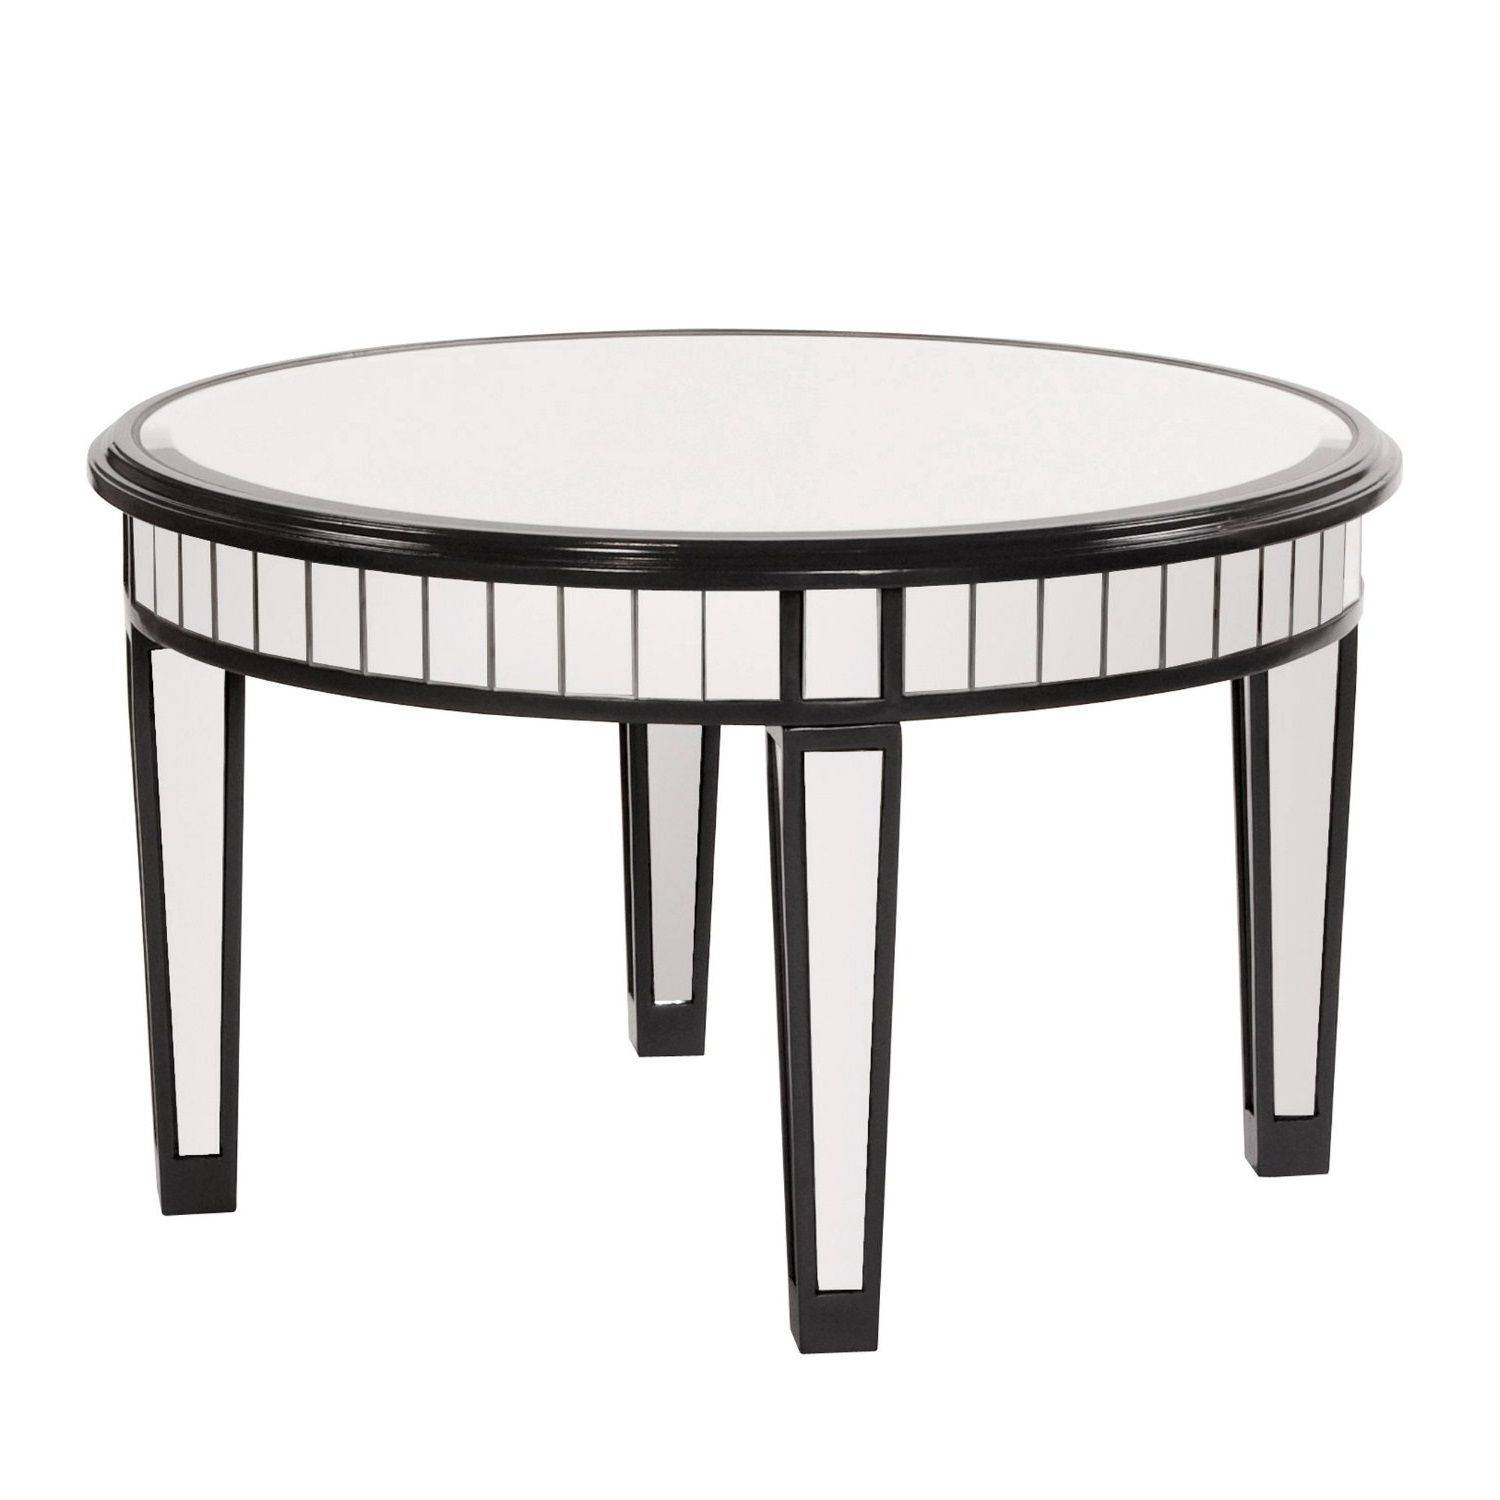 30 Collection of Round Mirrored Coffee Tables